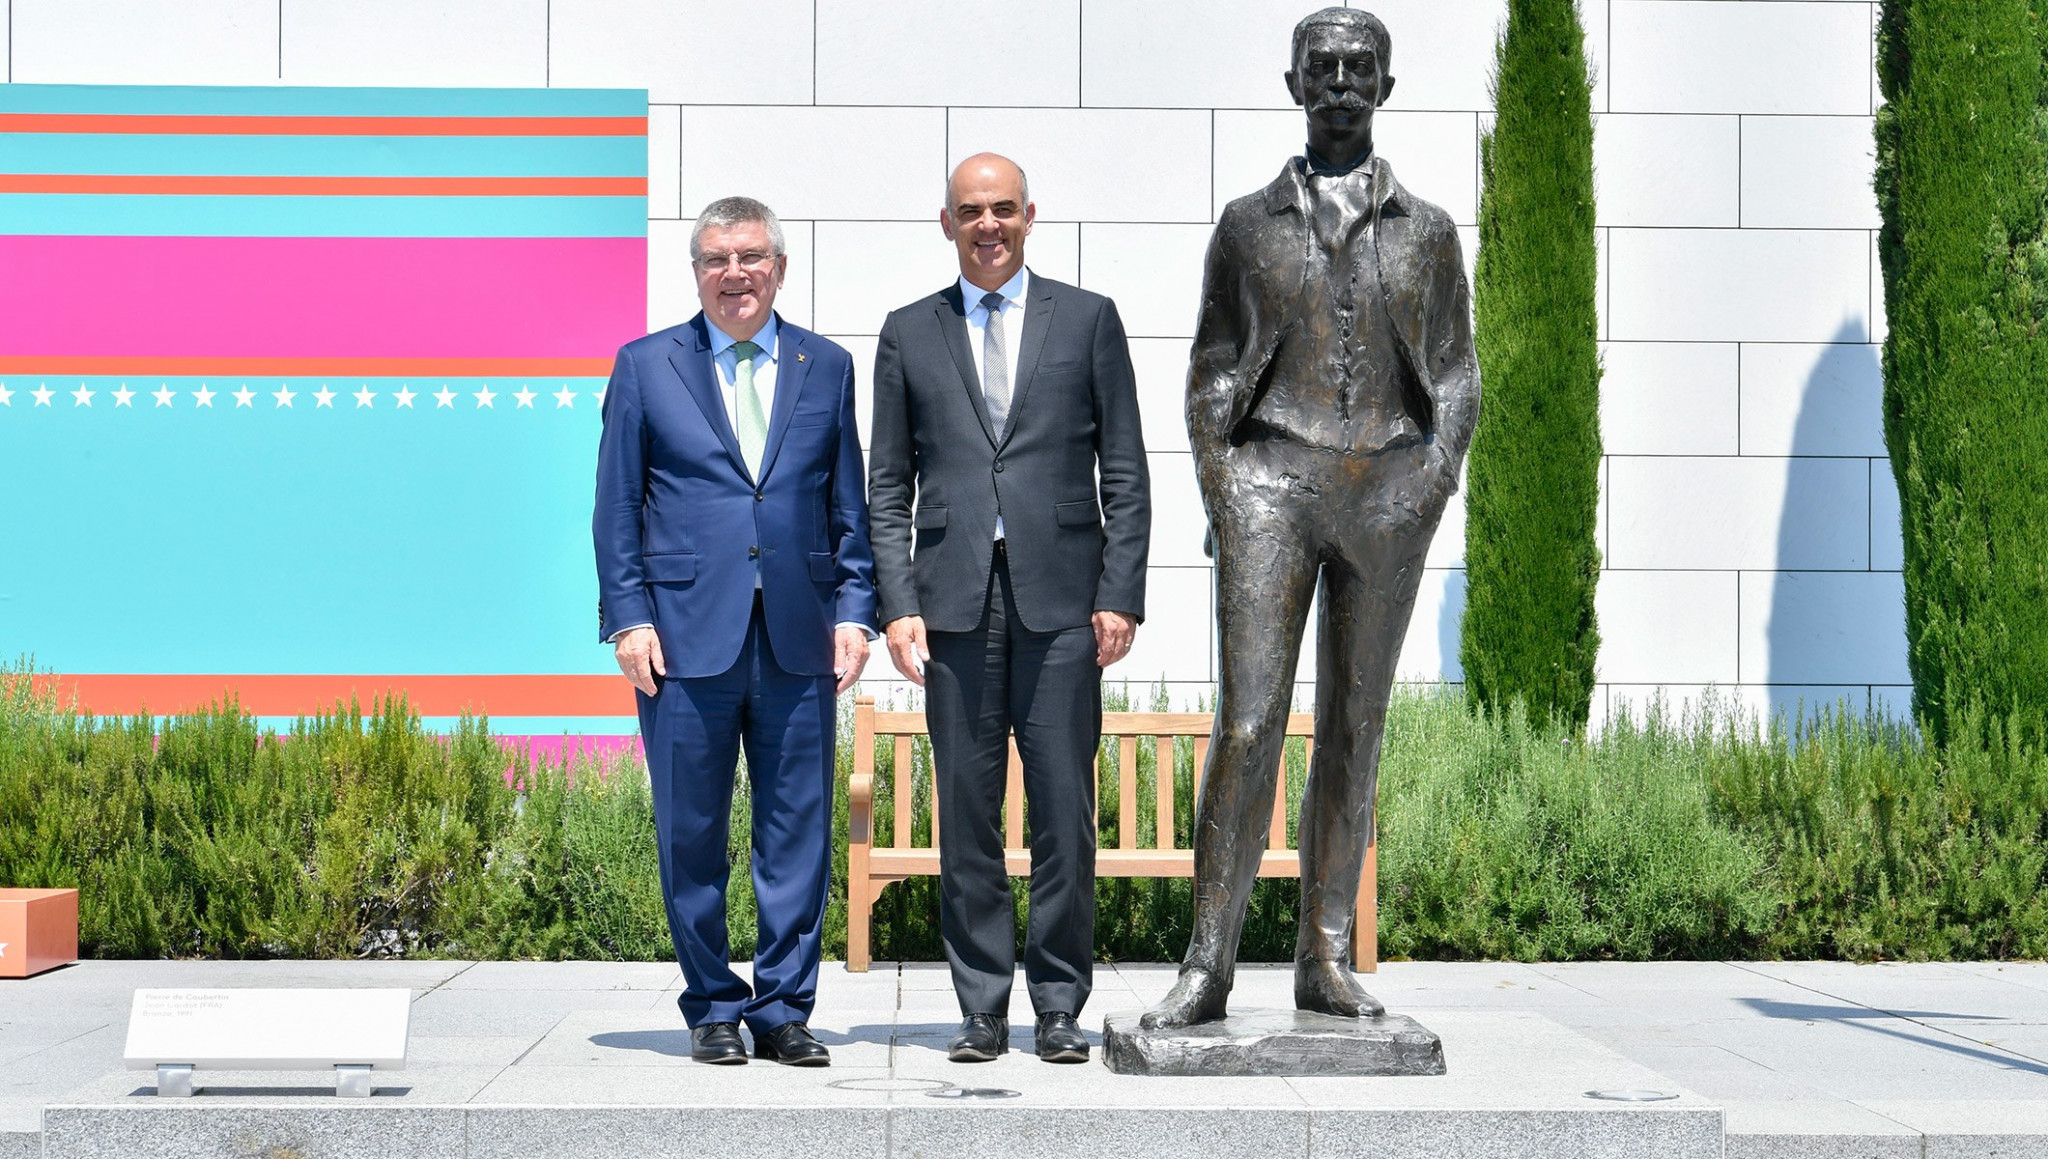 International Olympic Committee President Thomas Bach has welcomed Swiss Confederation counterpart Alain Berset to the Olympic Museum in Lausanne as a guest of honour ©IOC